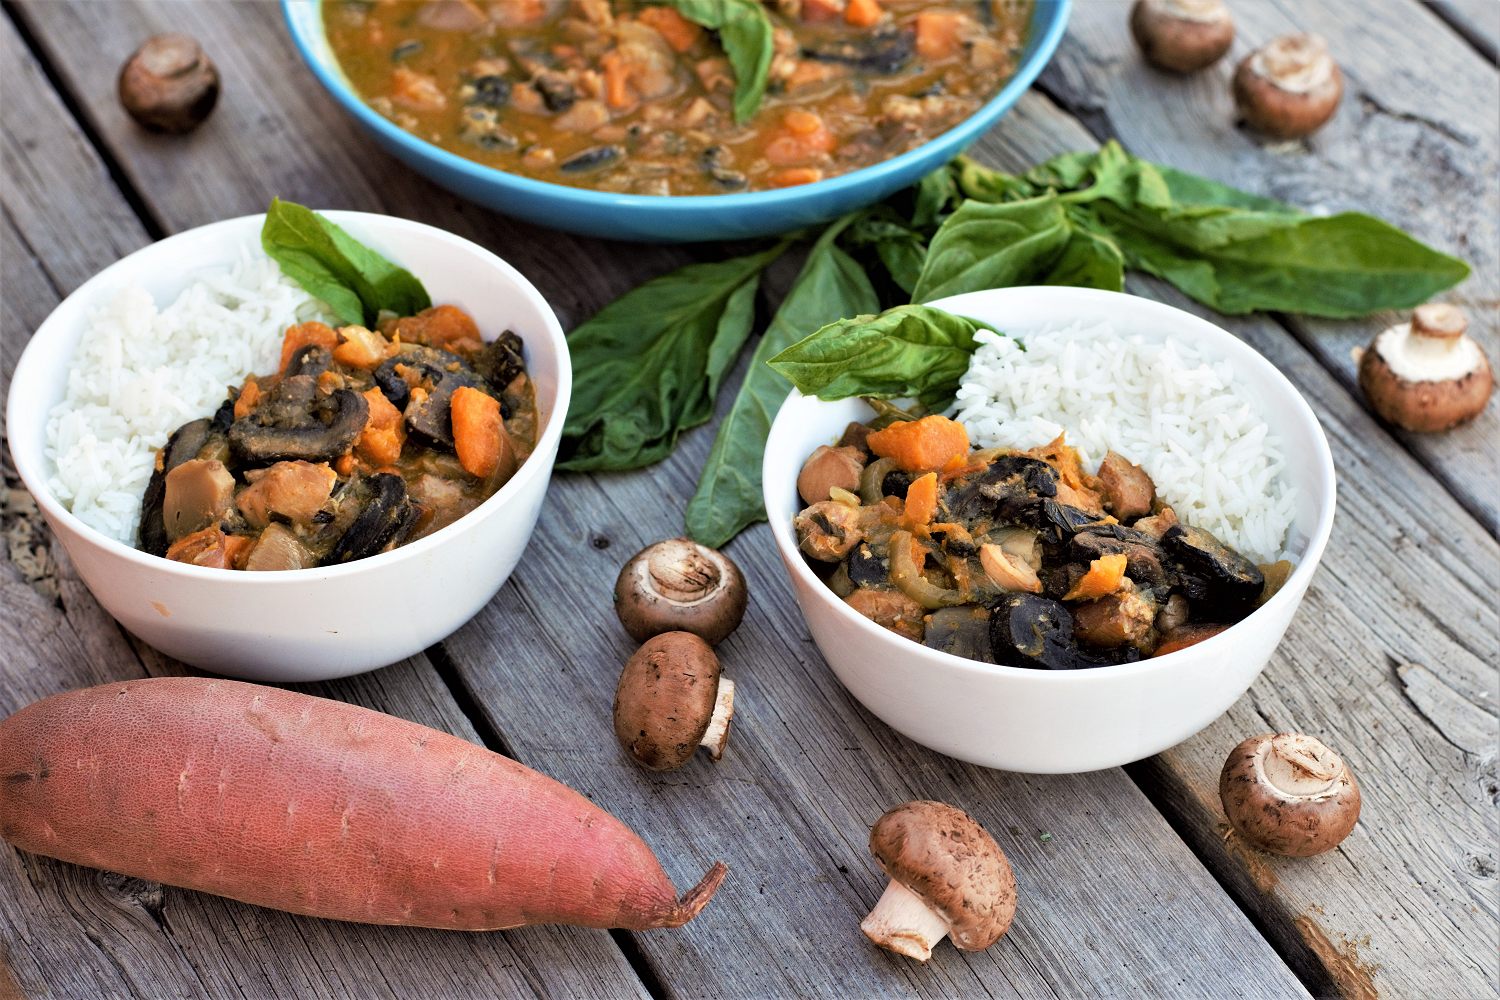 Healthy slow cooker 'curry' is the ugly duckling of cozy holiday food but it's secretly loaded with feel-good veggies; you'll count the minutes 'til dinner!